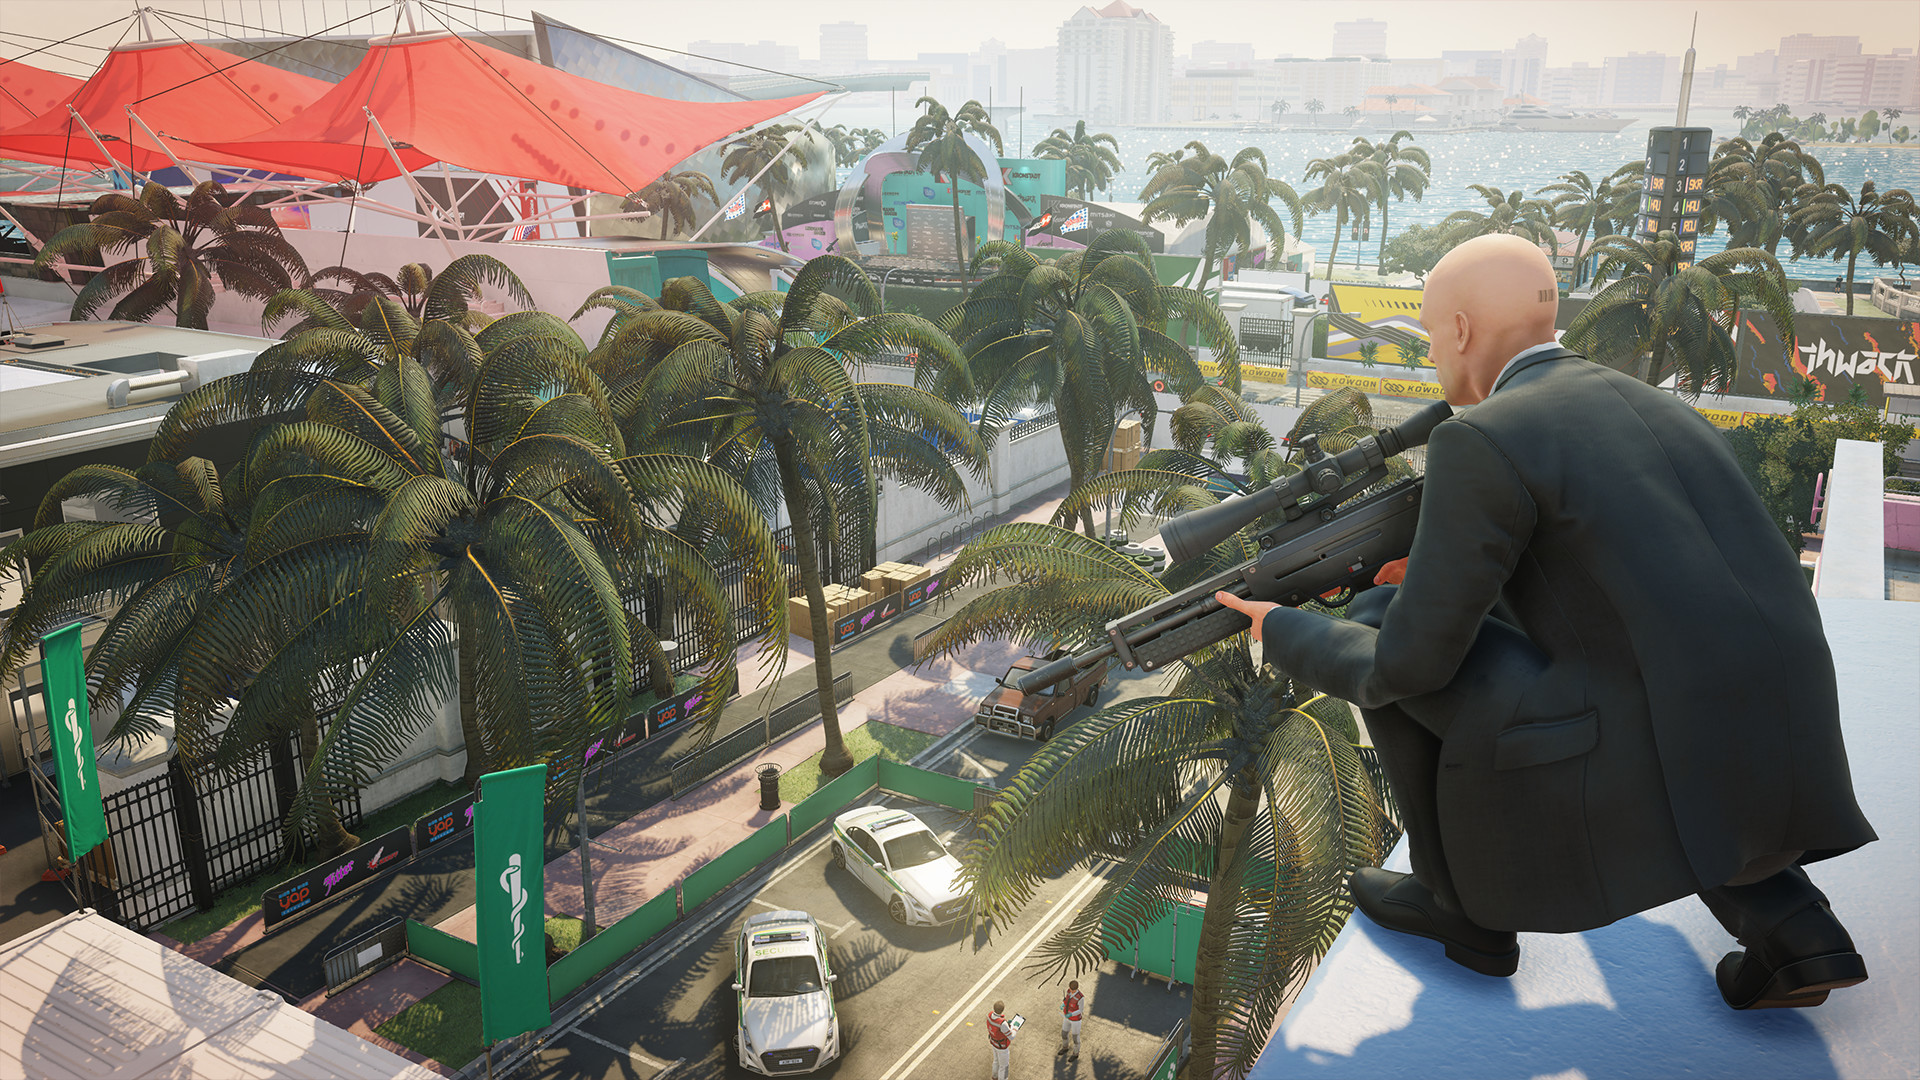 Hitman 2 is coming this November and it won't be episodic